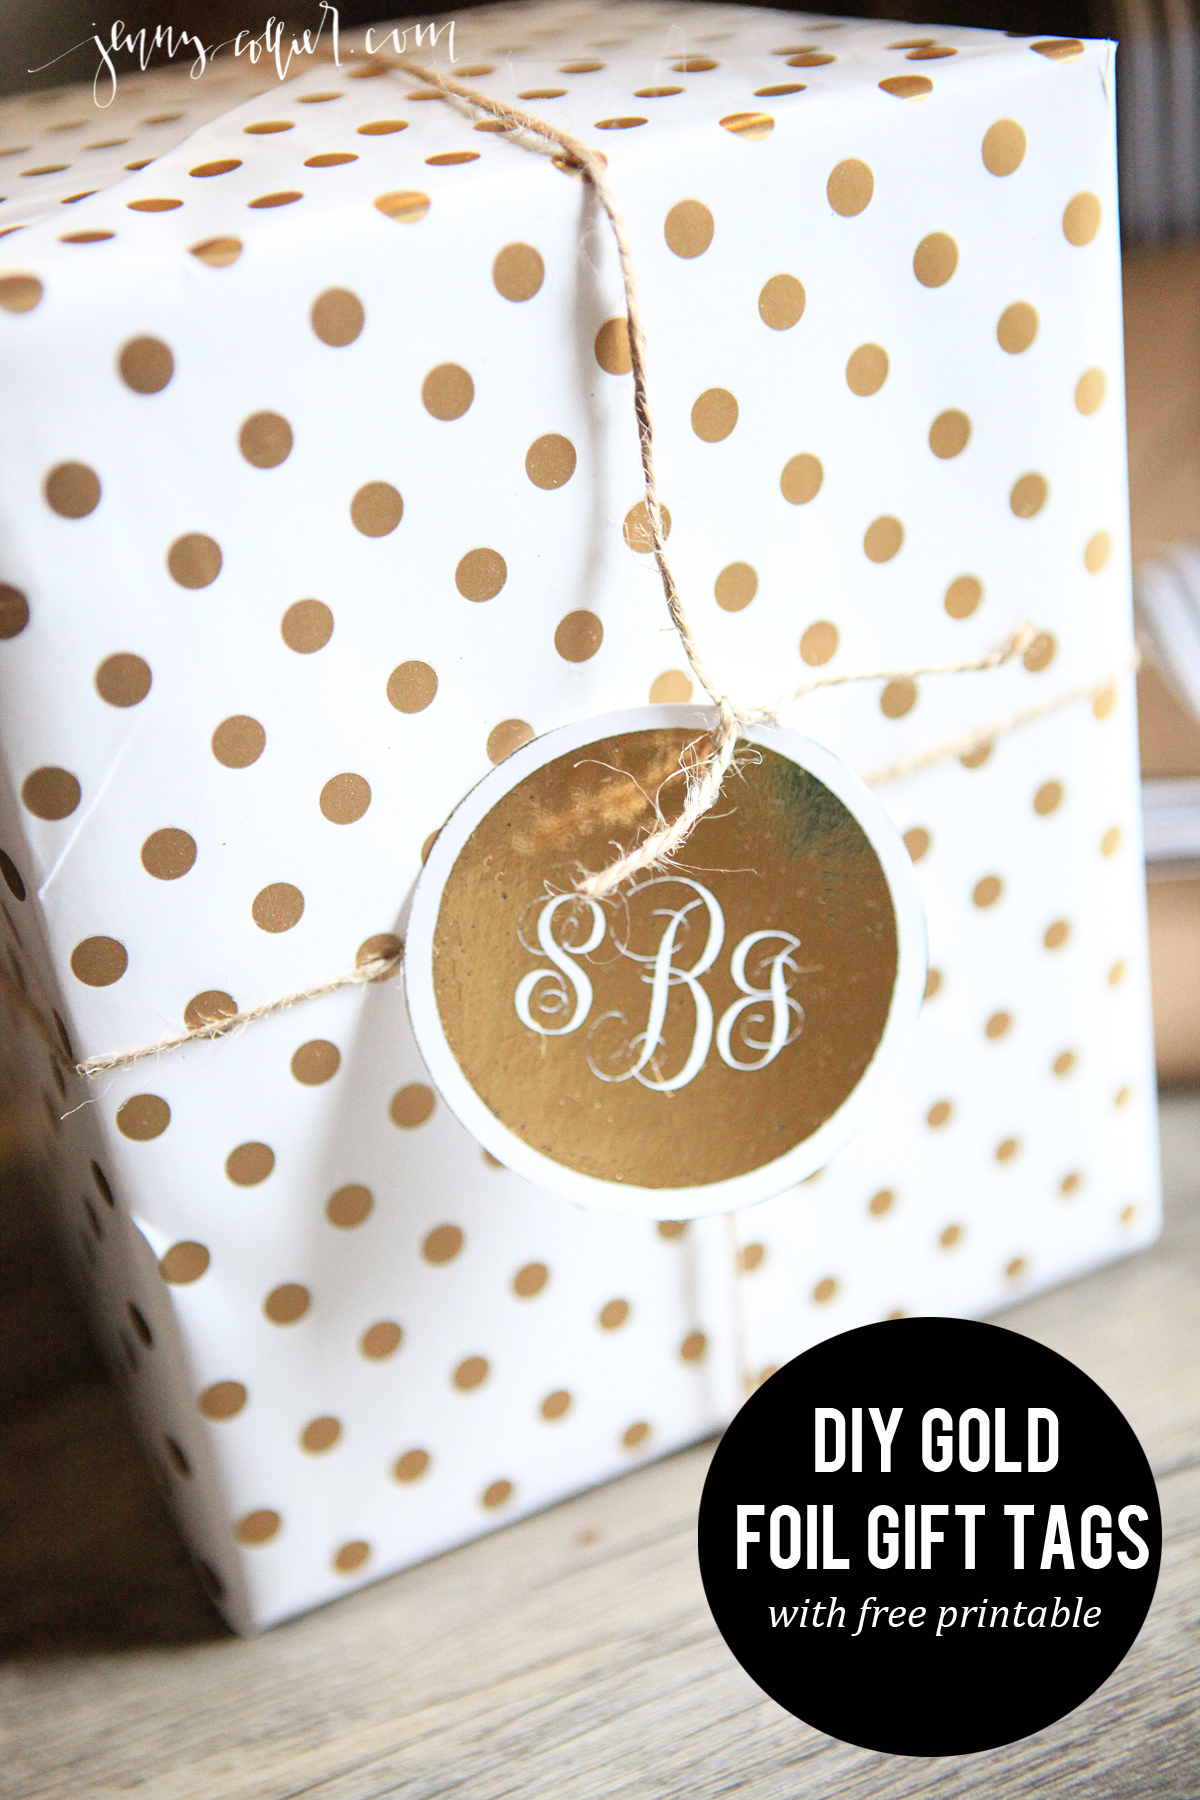 Diy gold foil gift tags jenny collier blog for Diy monogram gifts